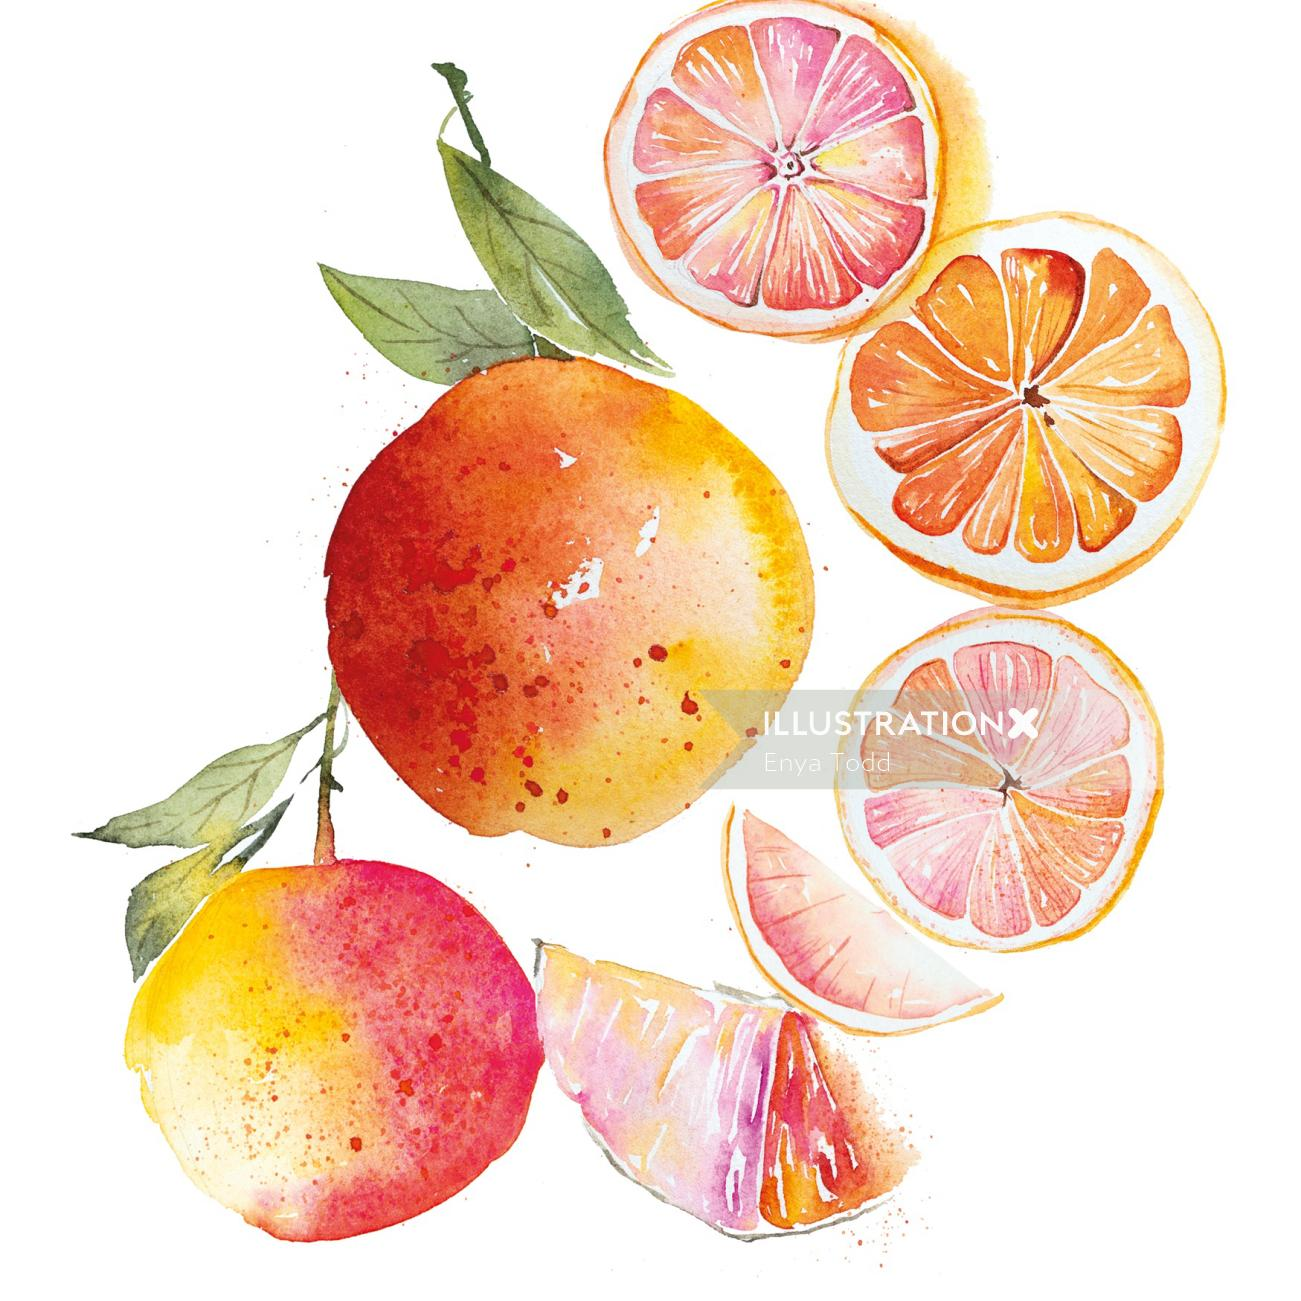 Grapefruits illustration by Enya Todd